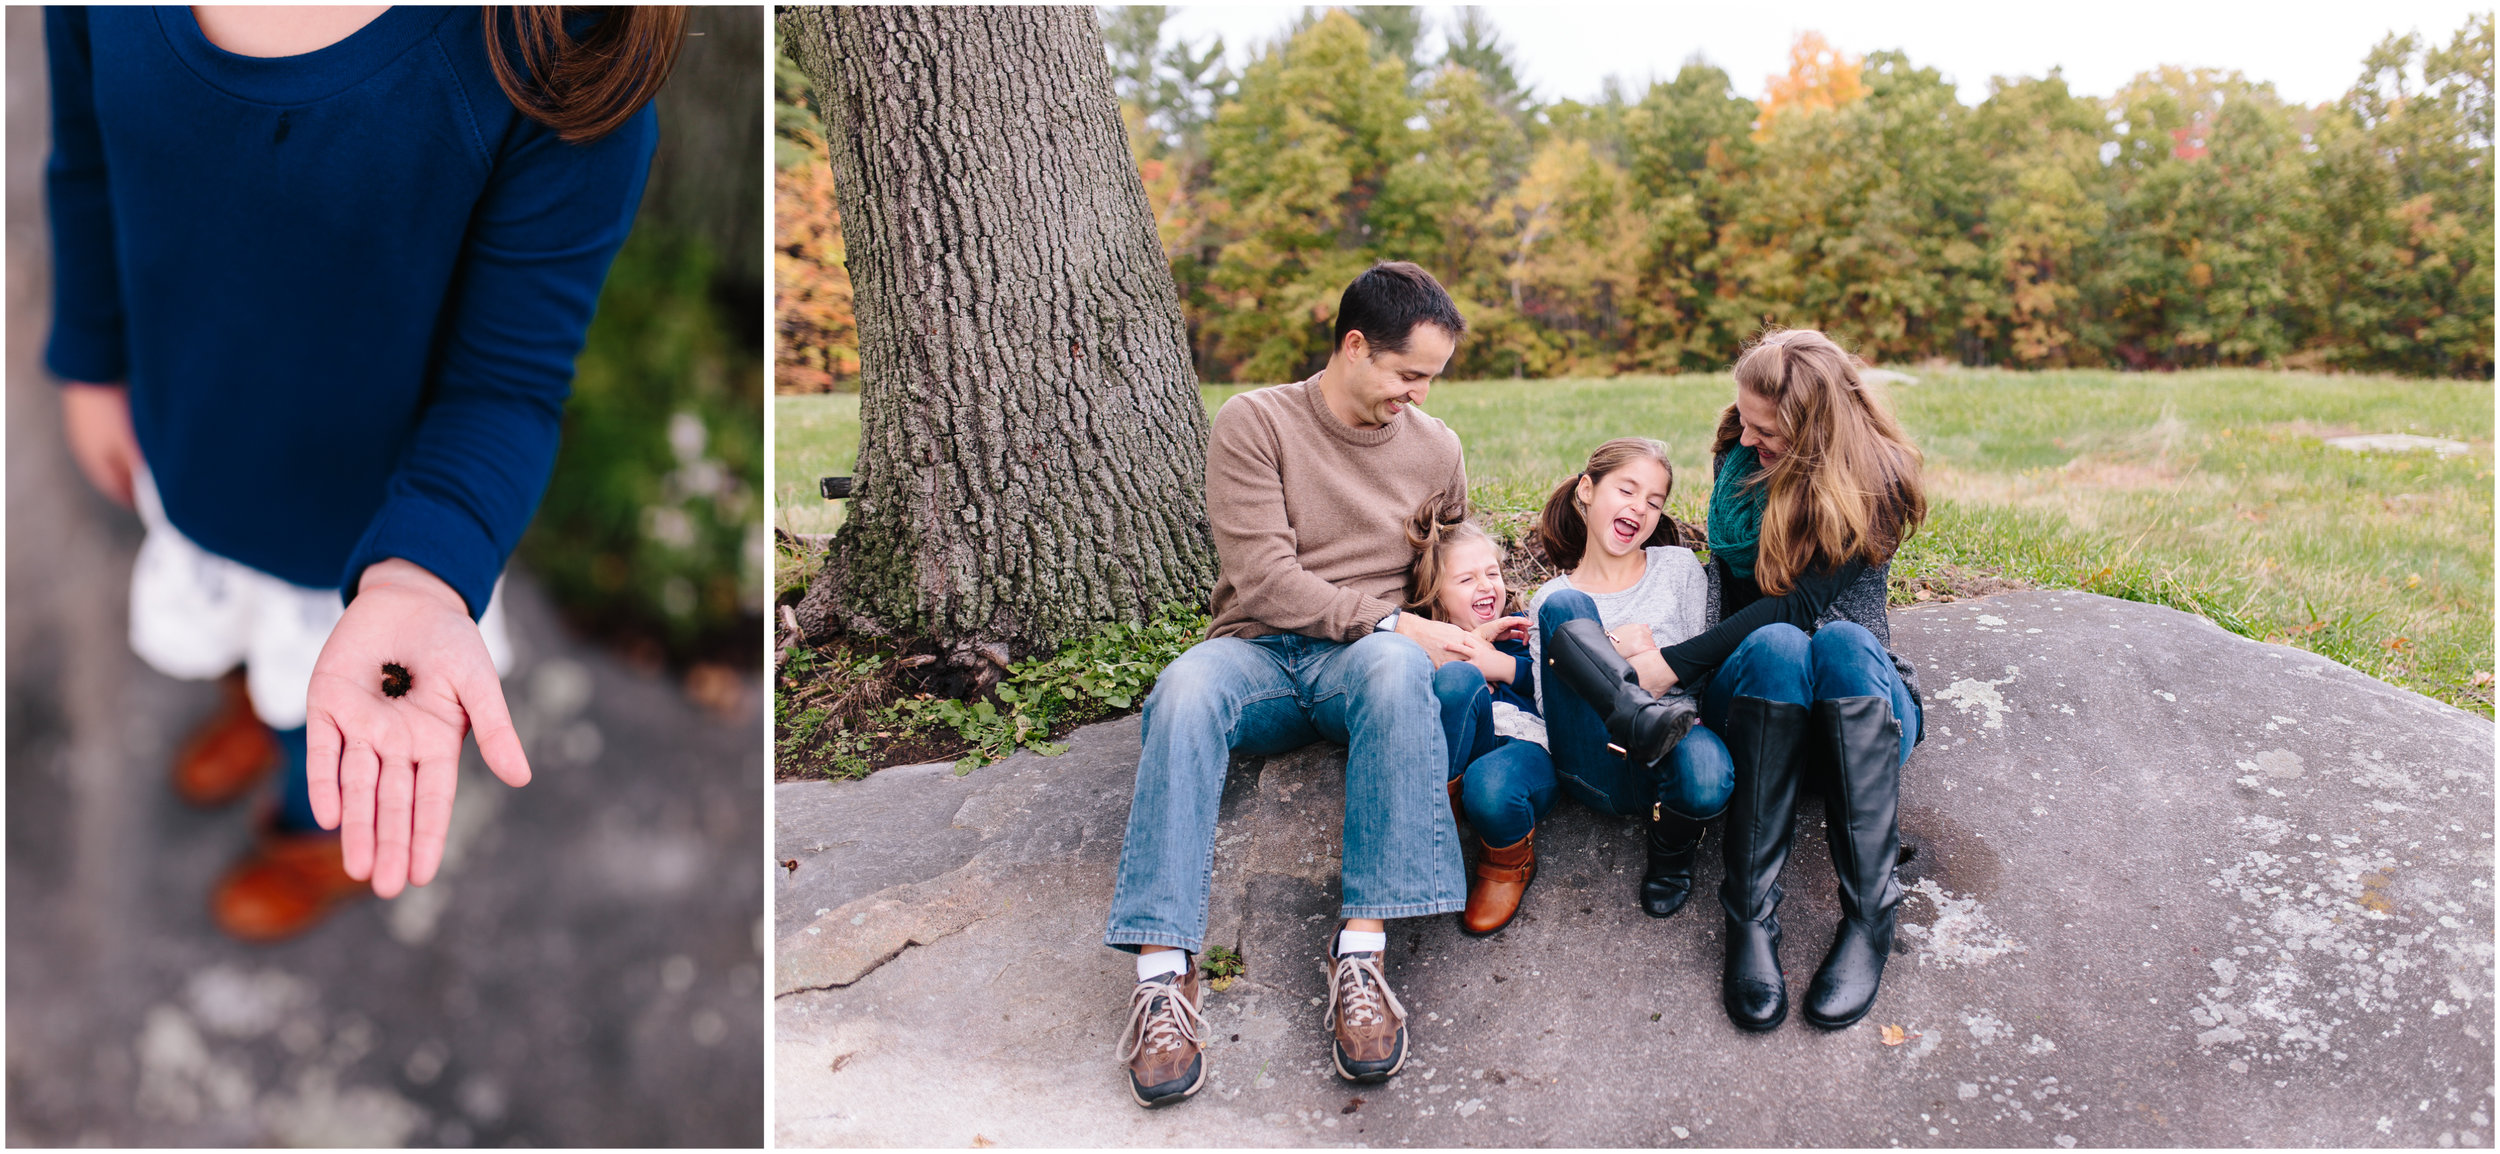 Fall autumn Monson Village Center family photography in Milford, New Hampshire